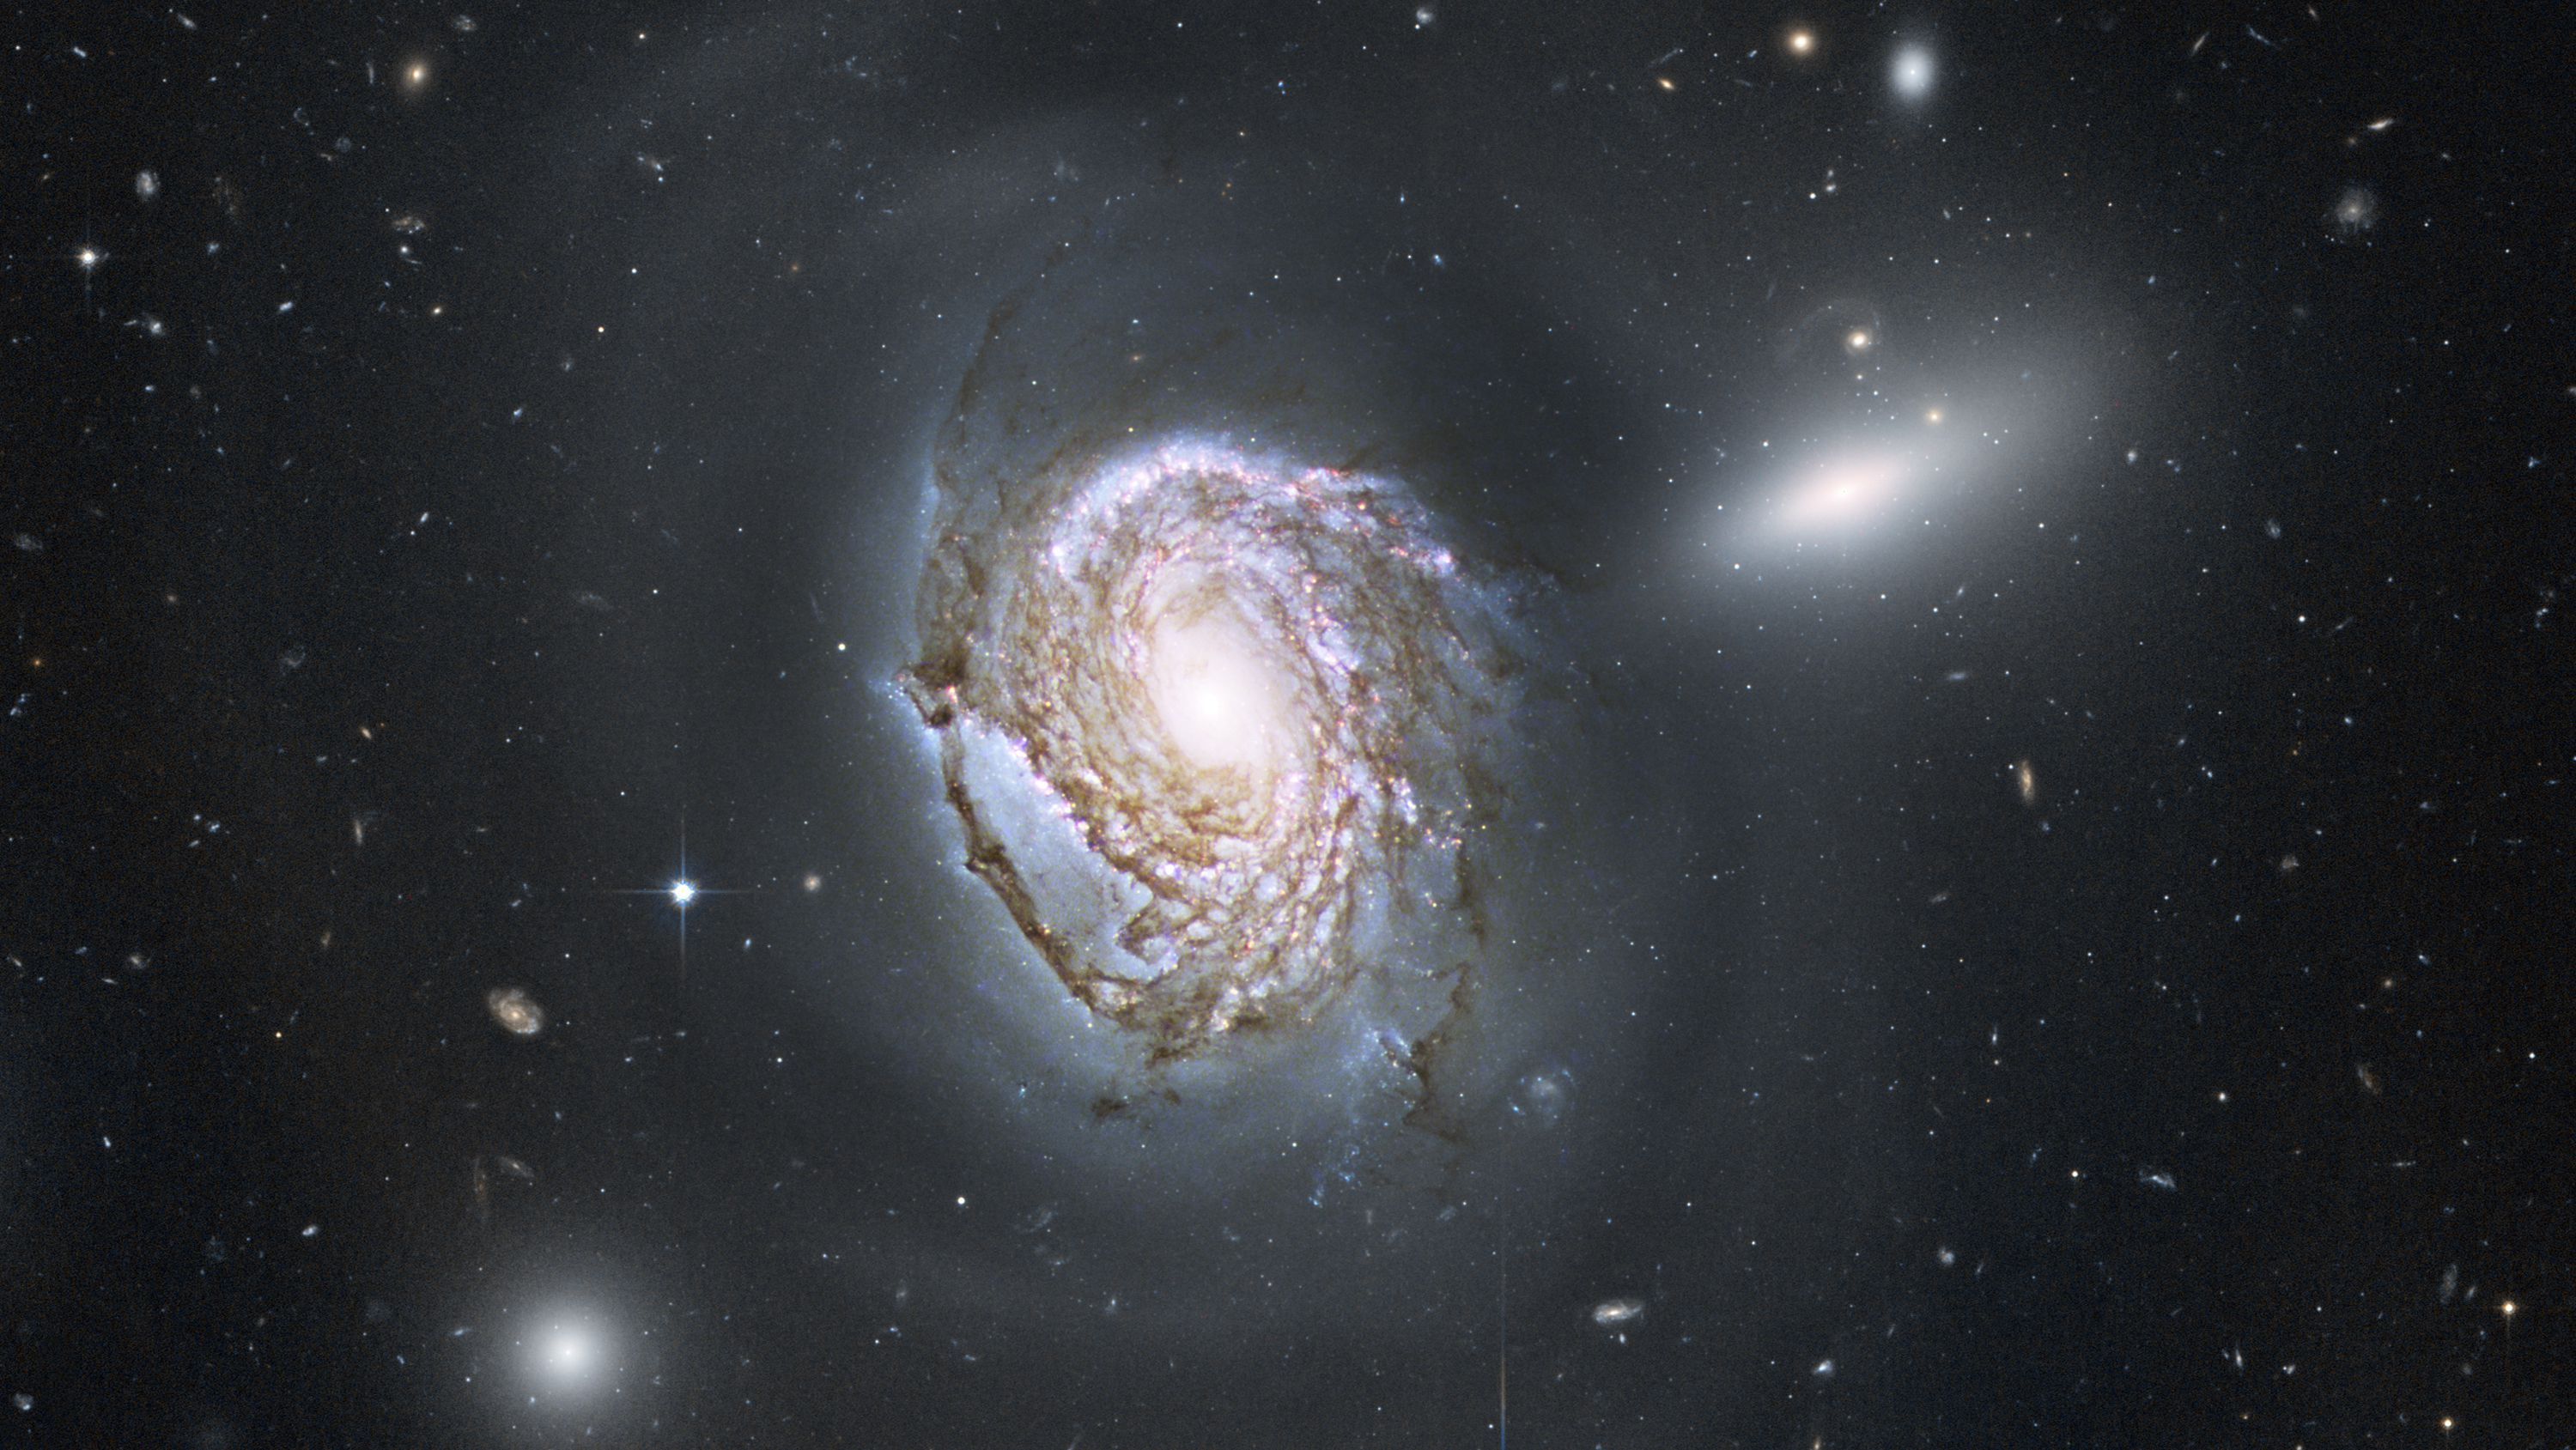 This image provided by NASA Tuesday Aug. 10, 2010 shows a long-exposure Hubble Space Telescope image of the majestic face-on spiral galaxy NGC4911 located deep within the Coma Cluster of galaxies, which lies 320 million light-years away in the northern constellation Coma Berenices. (AP Photo/NASA)